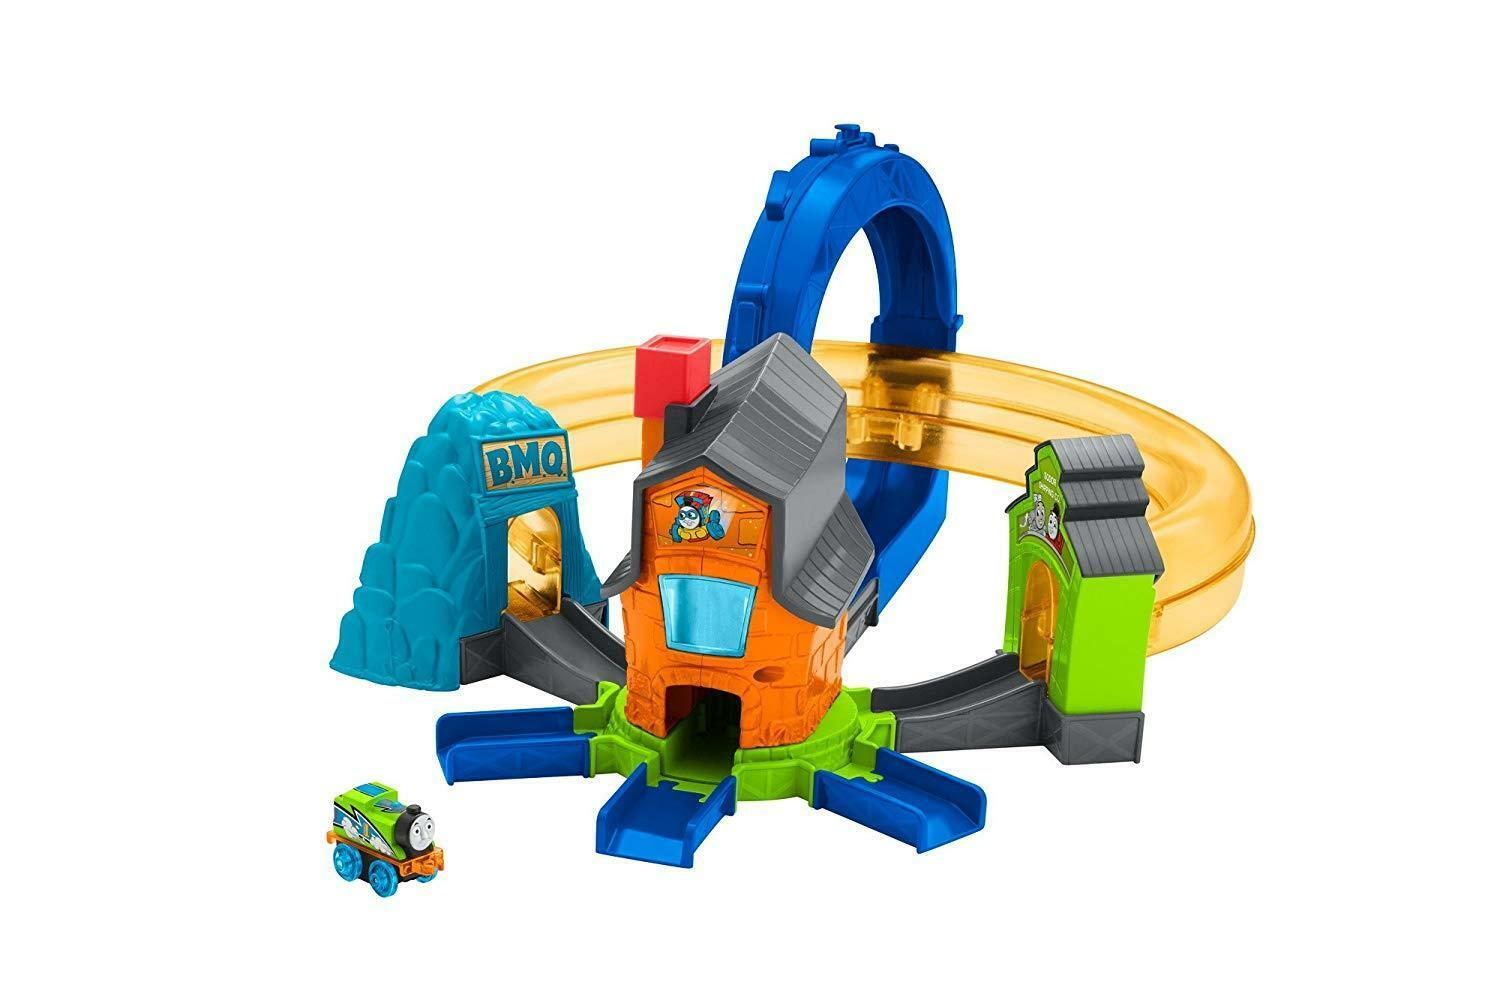 Thomas & Friends FJP36 Minis Boost N Blast Stunt Set, Thomas The Tank Engine